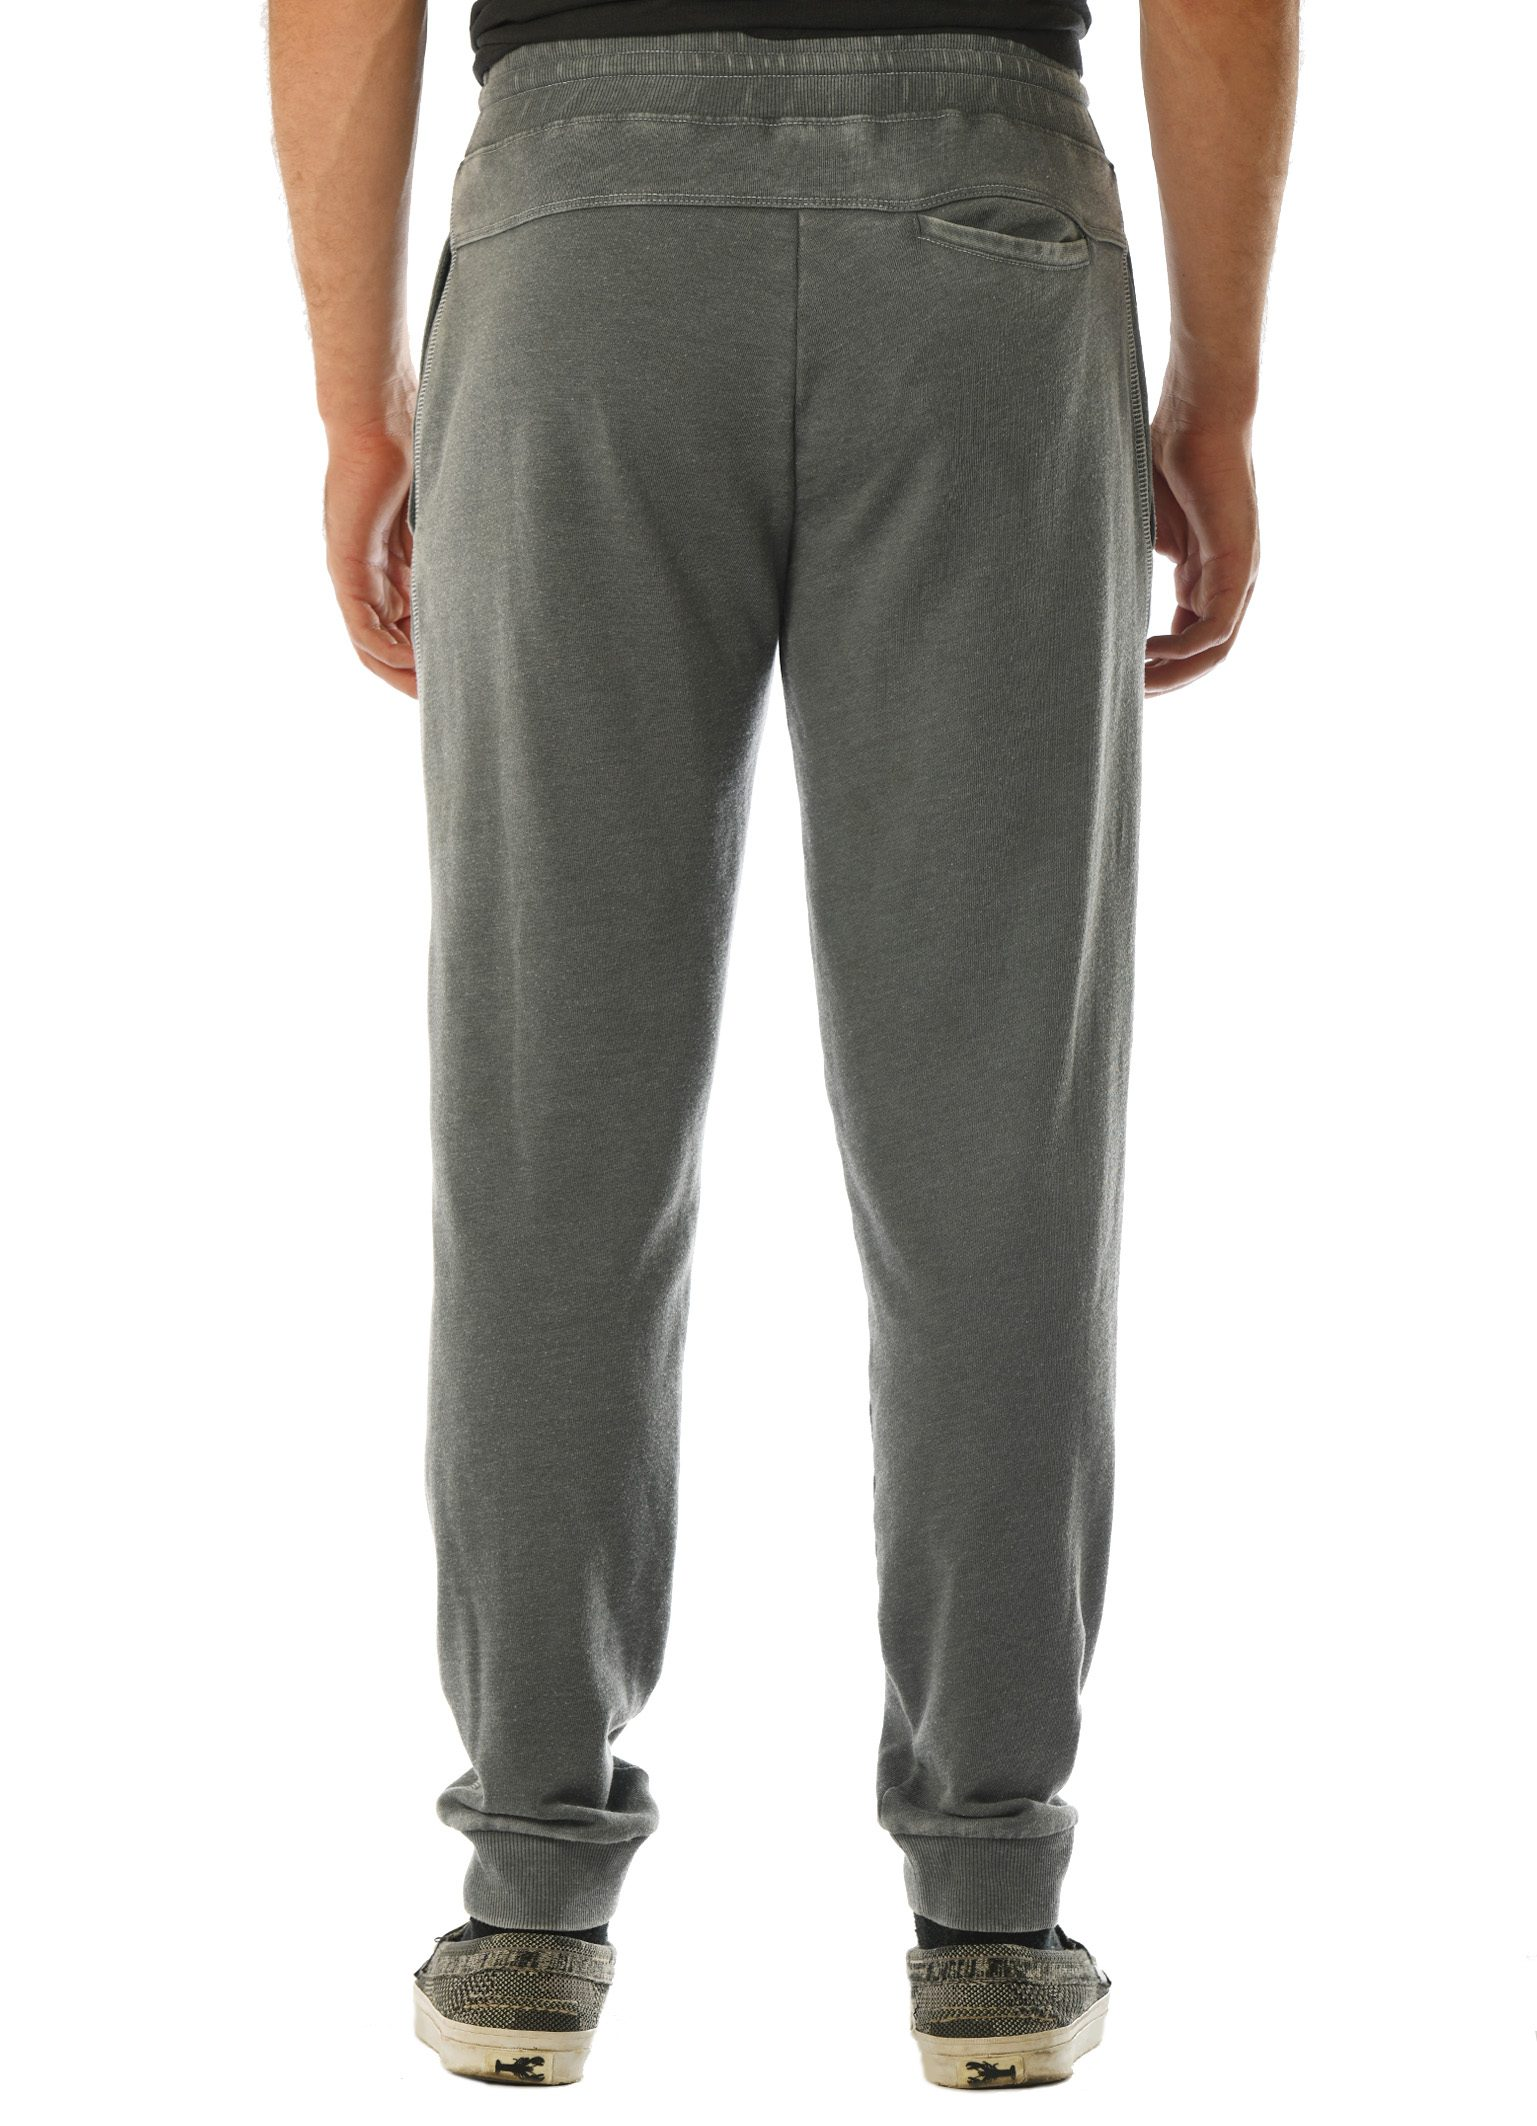 GG 312 B Men's Jogger back